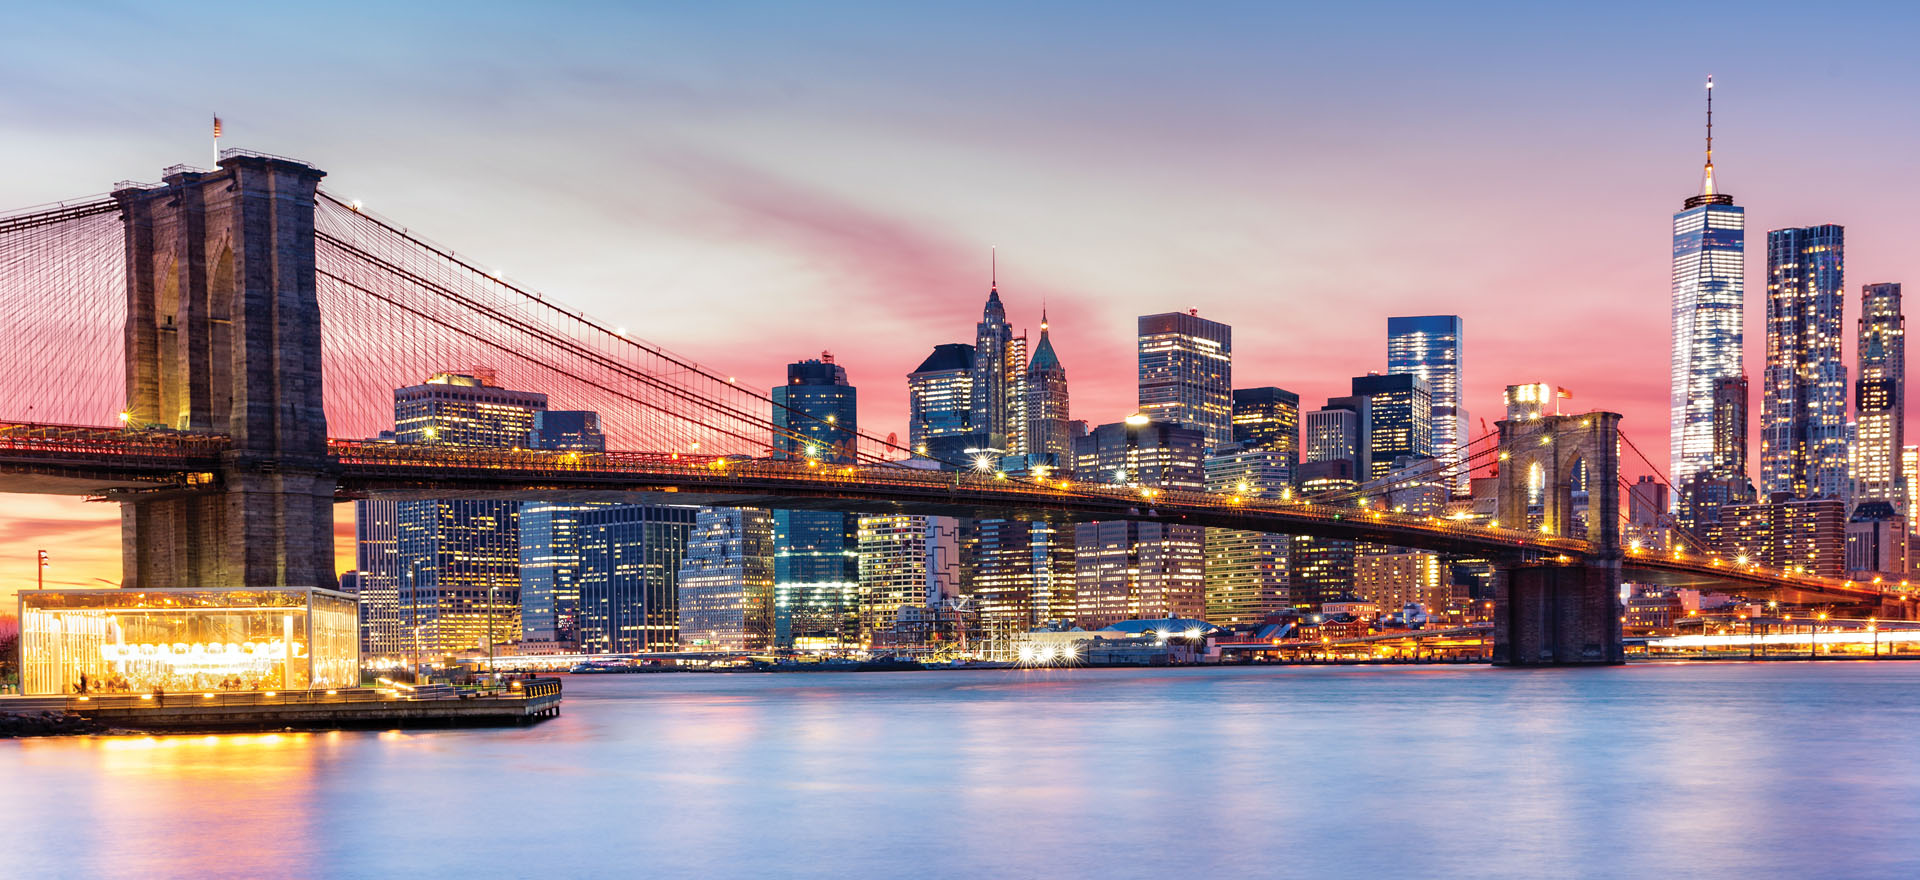 New York City | Brooklyn Bridge | Escorted Tours for Solo Travellers